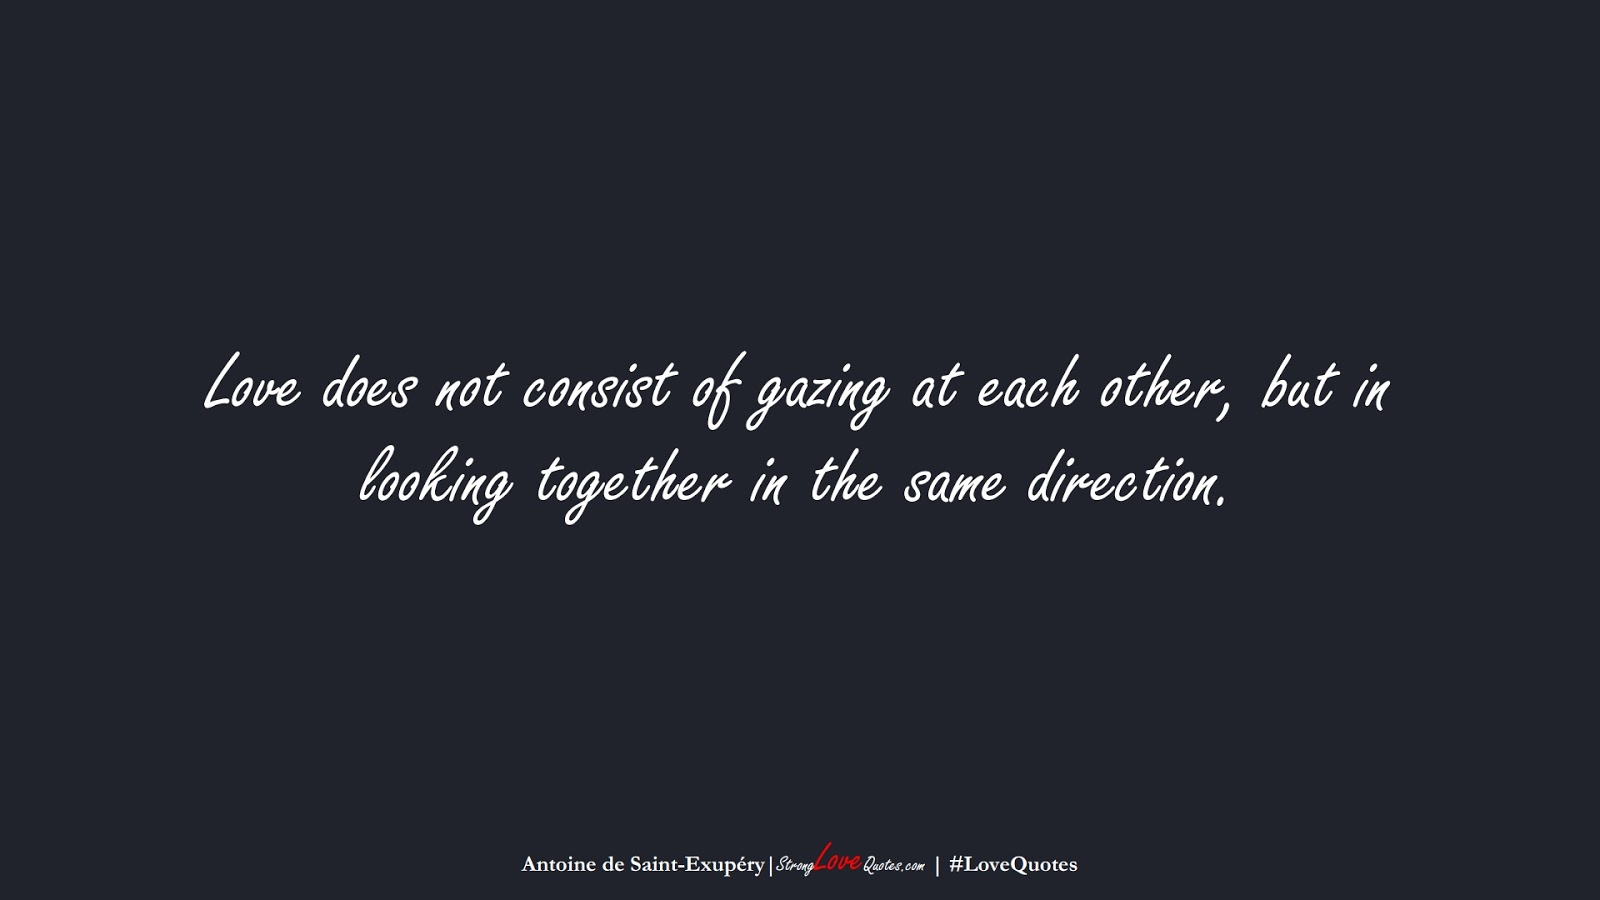 Love does not consist of gazing at each other, but in looking together in the same direction. (Antoine de Saint-Exupéry);  #LoveQuotes